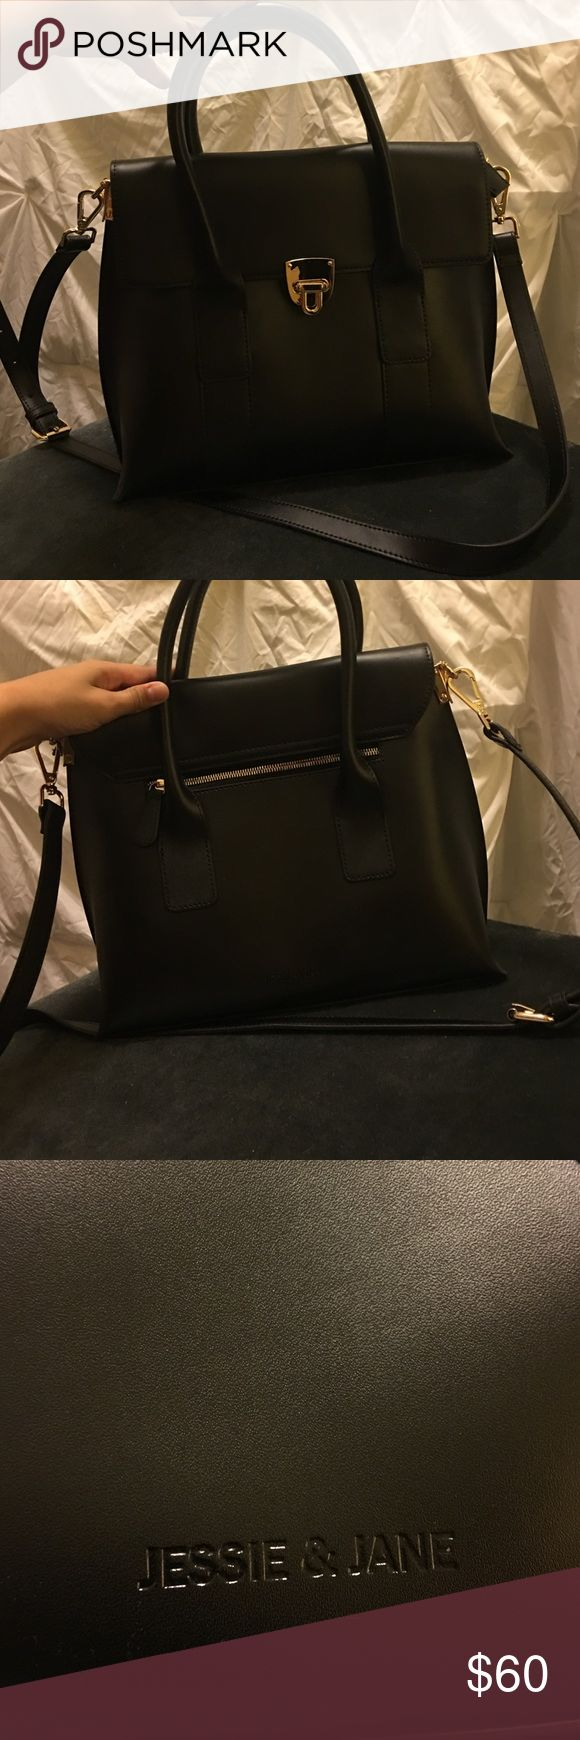 Black leather handbag NWOT, perfect condition. Jessie & Jane brand. Bought from Nordstrom. Jessie & Jane Bags